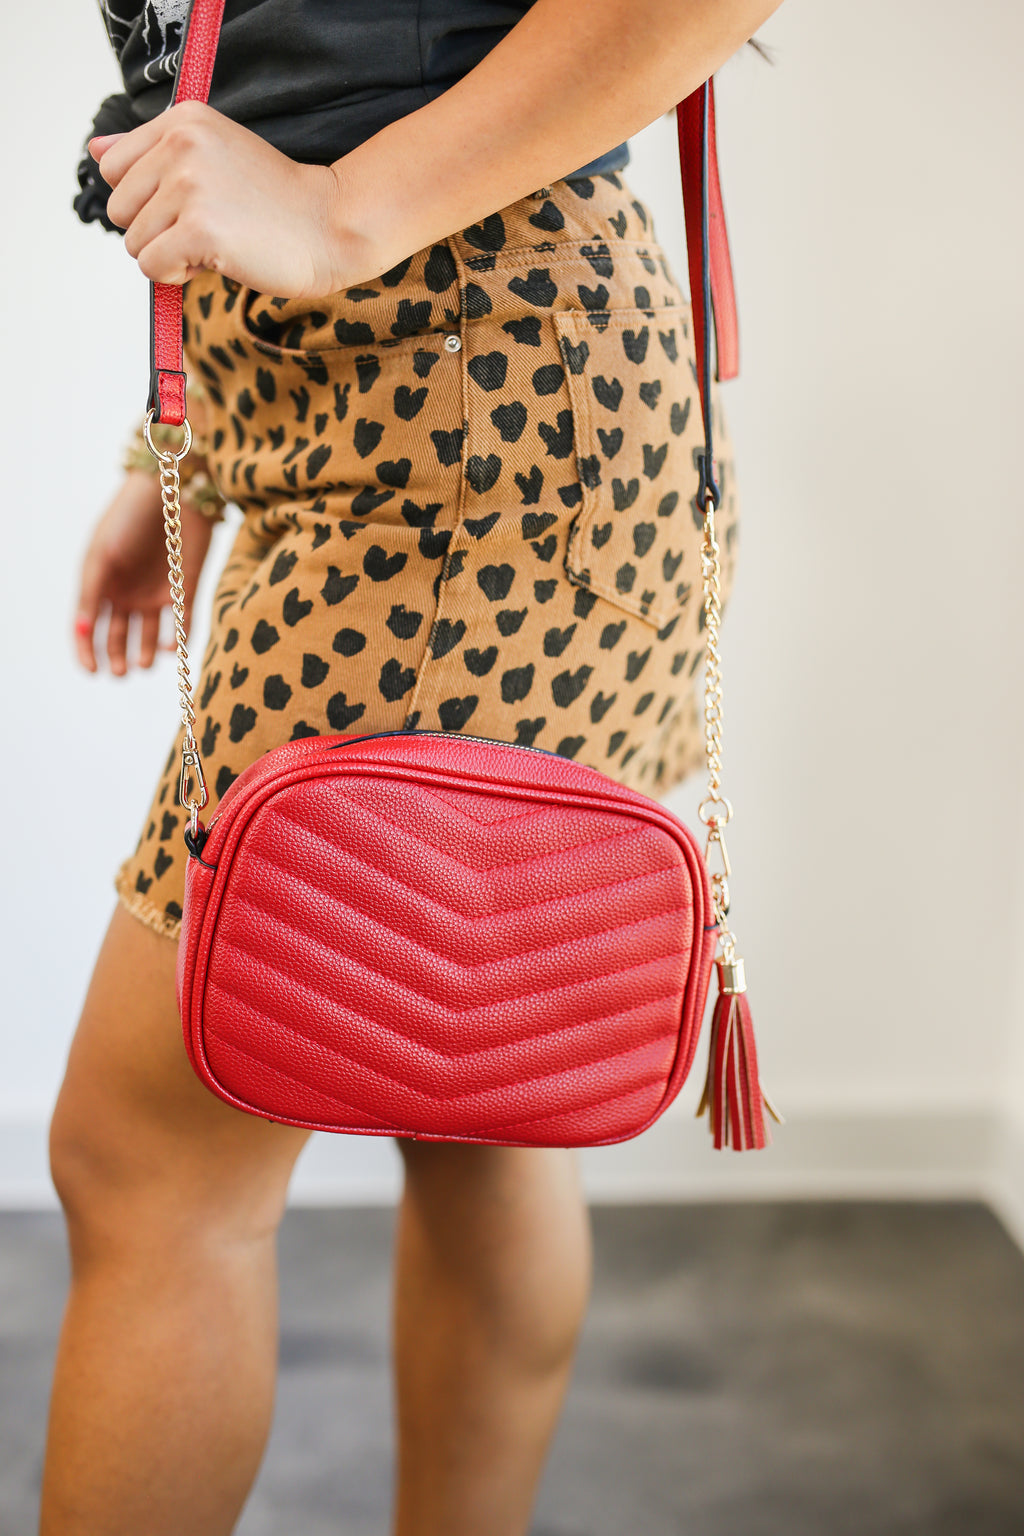 Get IT Girl Crossbody In Red